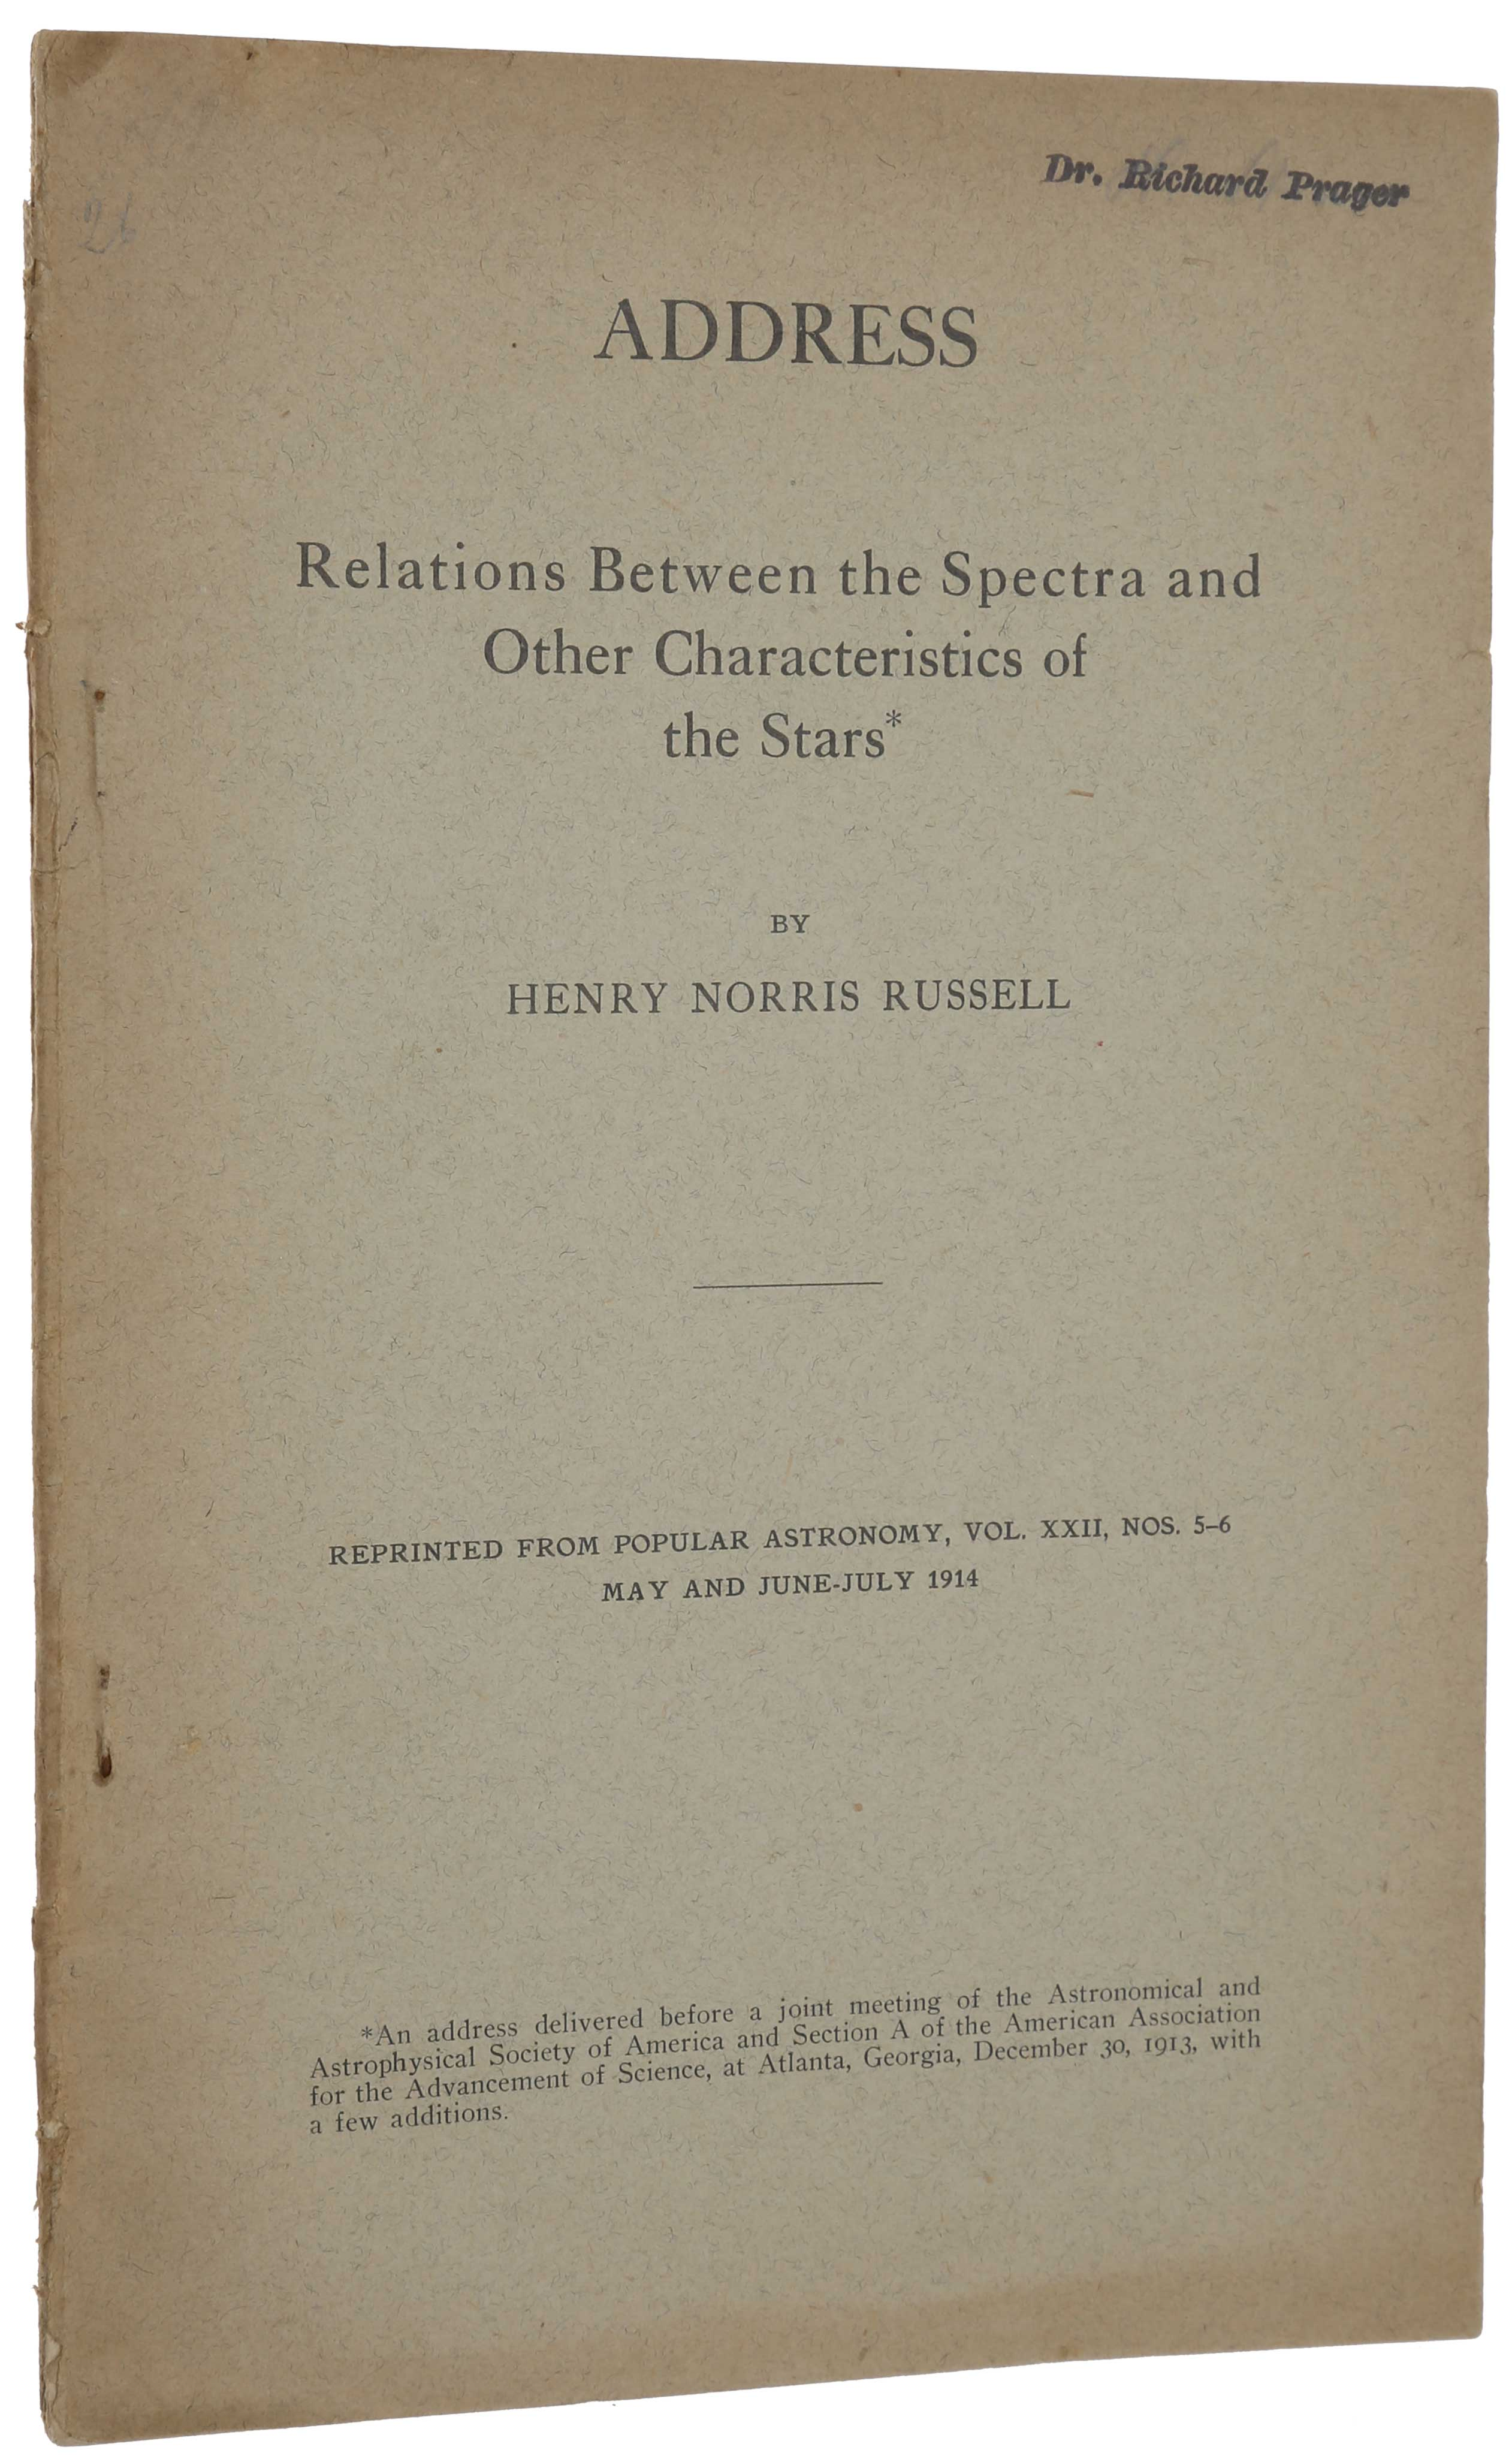 Relations Between the Spectra and Other Characteristics of the Stars. Offprint from Popular Astronomy, Vol. 22, Nos. 5 – 6, 1914. Henry Norris RUSSELL.